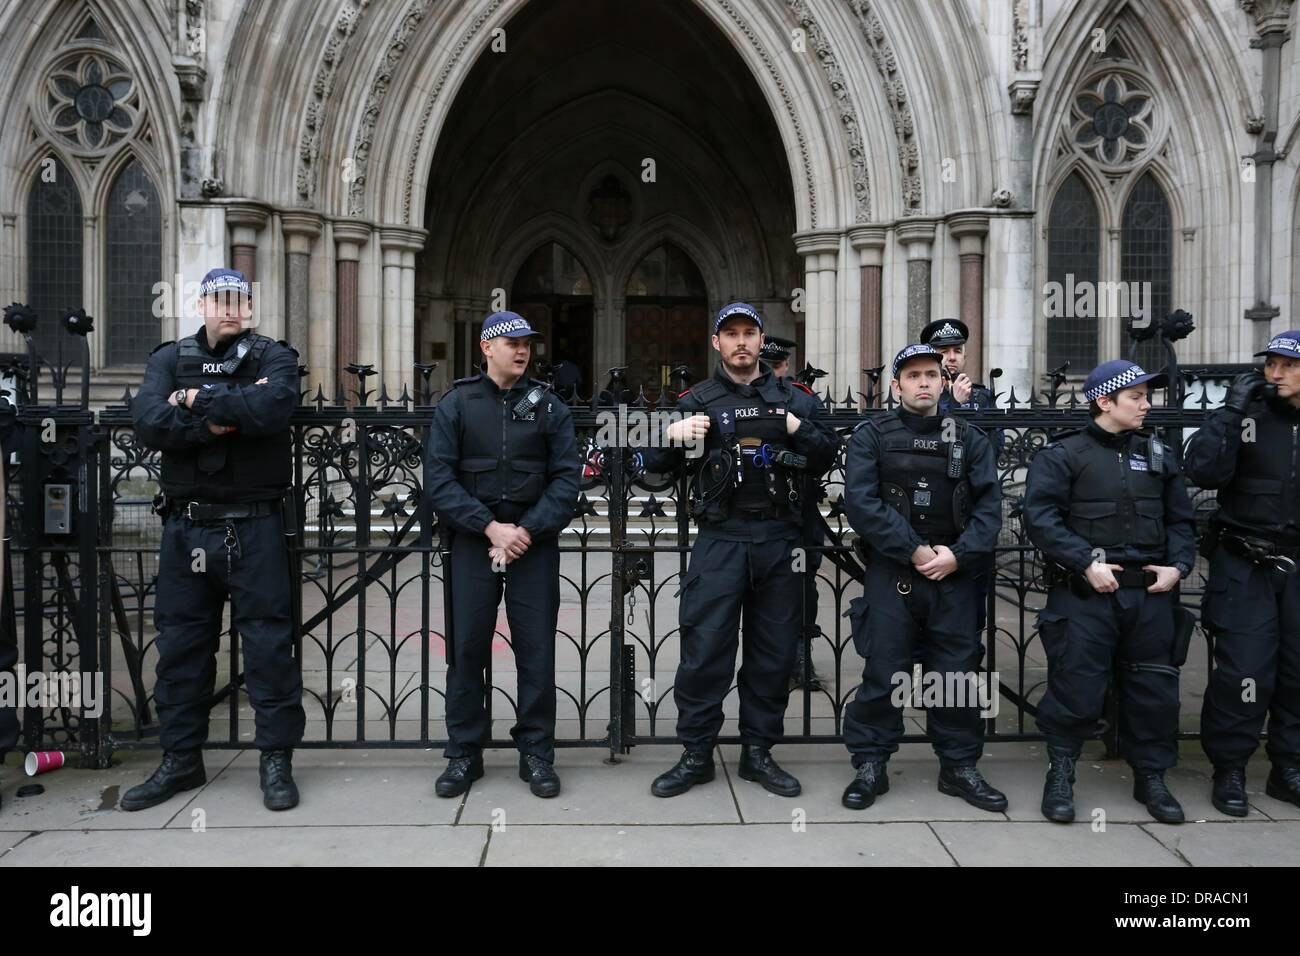 Police stand guard outside the Royal Courts of Justice. Students continued their campaign in support of lecturers - Stock Image